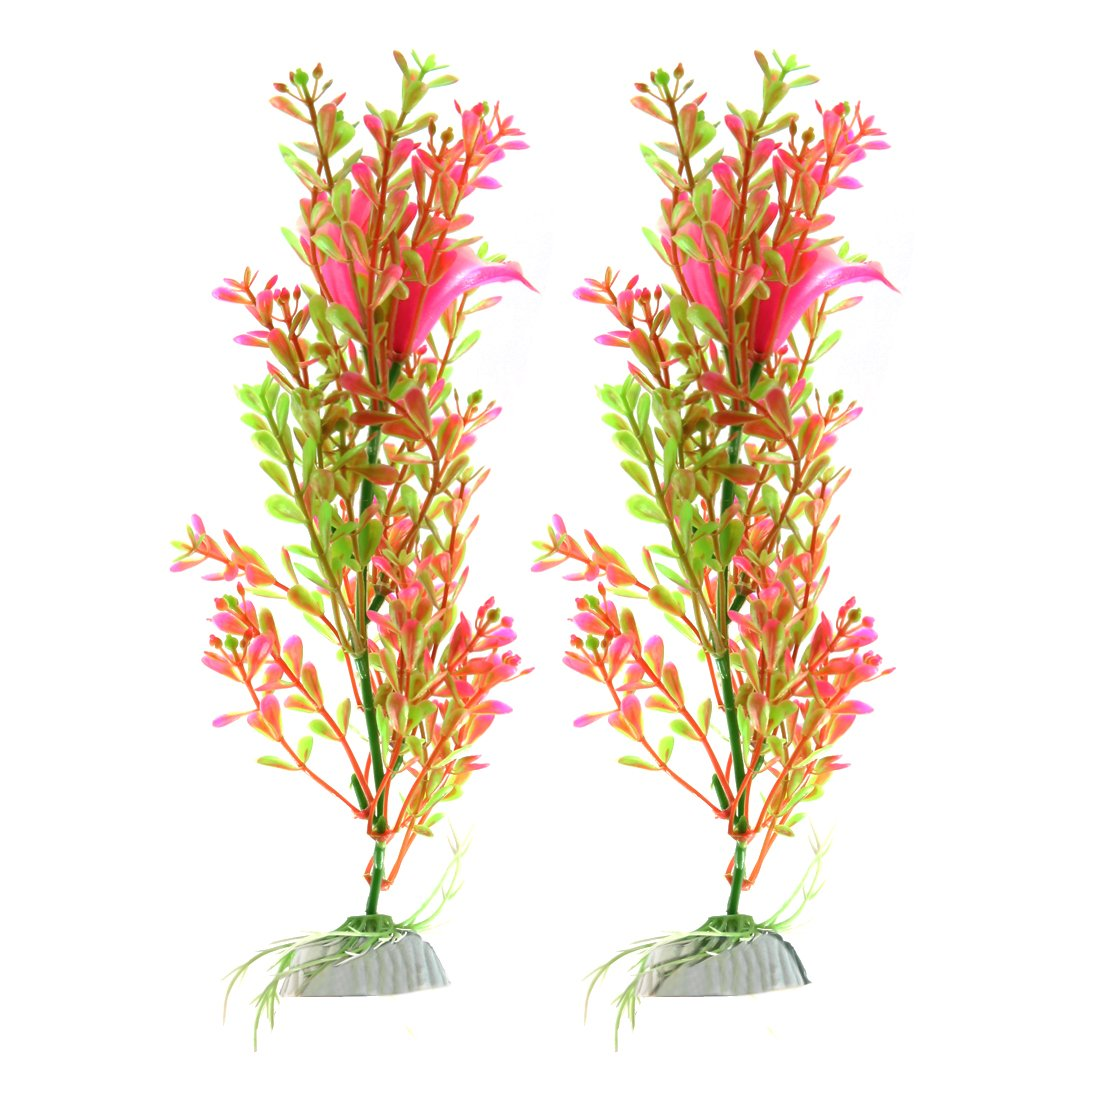 Green,Pink Type 3 Green,Pink Type 3 uxcell® 2pcs Pink Green Plastic Plant Aquarium Fishbowl Waterscape Decor Ornament